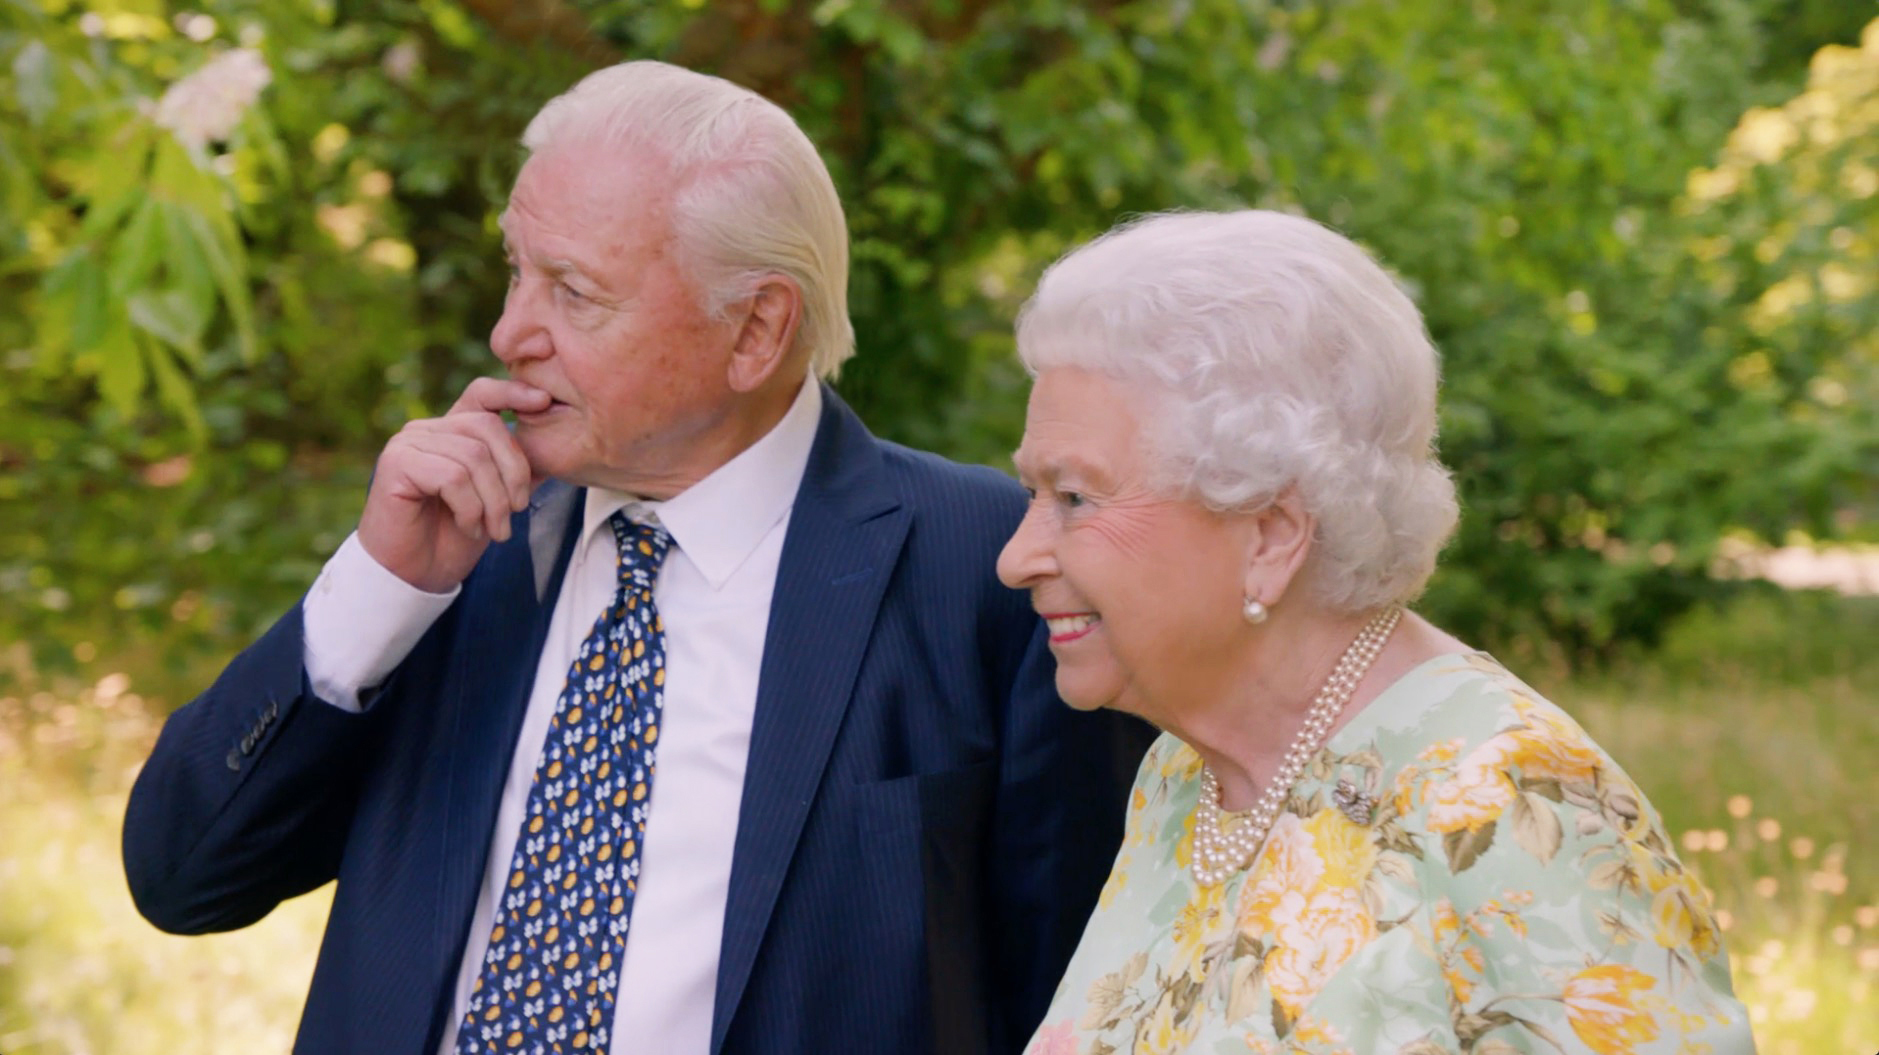 From ITN Productions THE QUEENS GREEN PLANET Monday 16th April 2018 on ITV Pictured: Sir David Attenborough joins Her Majesty the Queen in the gardens of Buckingham Palace This unique, landmark documentary follows Her Majesty the Queen and an ambitious legacy project to create a global network of protected forests, spanning the 52 countries of the Commonwealth. This project, called the QueenÕs Commonwealth Canopy, brings together Her MajestyÕs deeply held commitment to the Commonwealth and her little-known love of trees. At the heart of the film is a conversation between the Queen and Sir David Attenborough filmed in the gardens of Buckingham Palace last summer. In a rare opportunity to see the Queen talking informally to Sir David, the conversation ranges from climate change, to conkers and birthday gifts. The film follows members of the Royal Family involved so far in making the QueenÕs Commonwealth Canopy a reality, including Prince Harry planting trees in the Caribbean, and Prince William and his family in Canada's Great Bear Rainforest. (c) ITN Productions For further information please contact Peter Gray 0207 157 3046 peter.gray@itv.com This photograph is © ITV and can only be reproduced for editorial purposes directly in connection with the programme THE QUEENS GREEN PLANET or ITV. Once made available by the ITV Picture Desk, this photograph can be reproduced once only up until the Transmission date and no reproduction fee will be charged. Any subsequent usage may incur a fee. This photograph must not be syndicated to any other publication or website, or permanently archived, without the express written permission of ITV Picture Desk. Full Terms and conditions are available on the website www.itvpictures.com ITV, TL